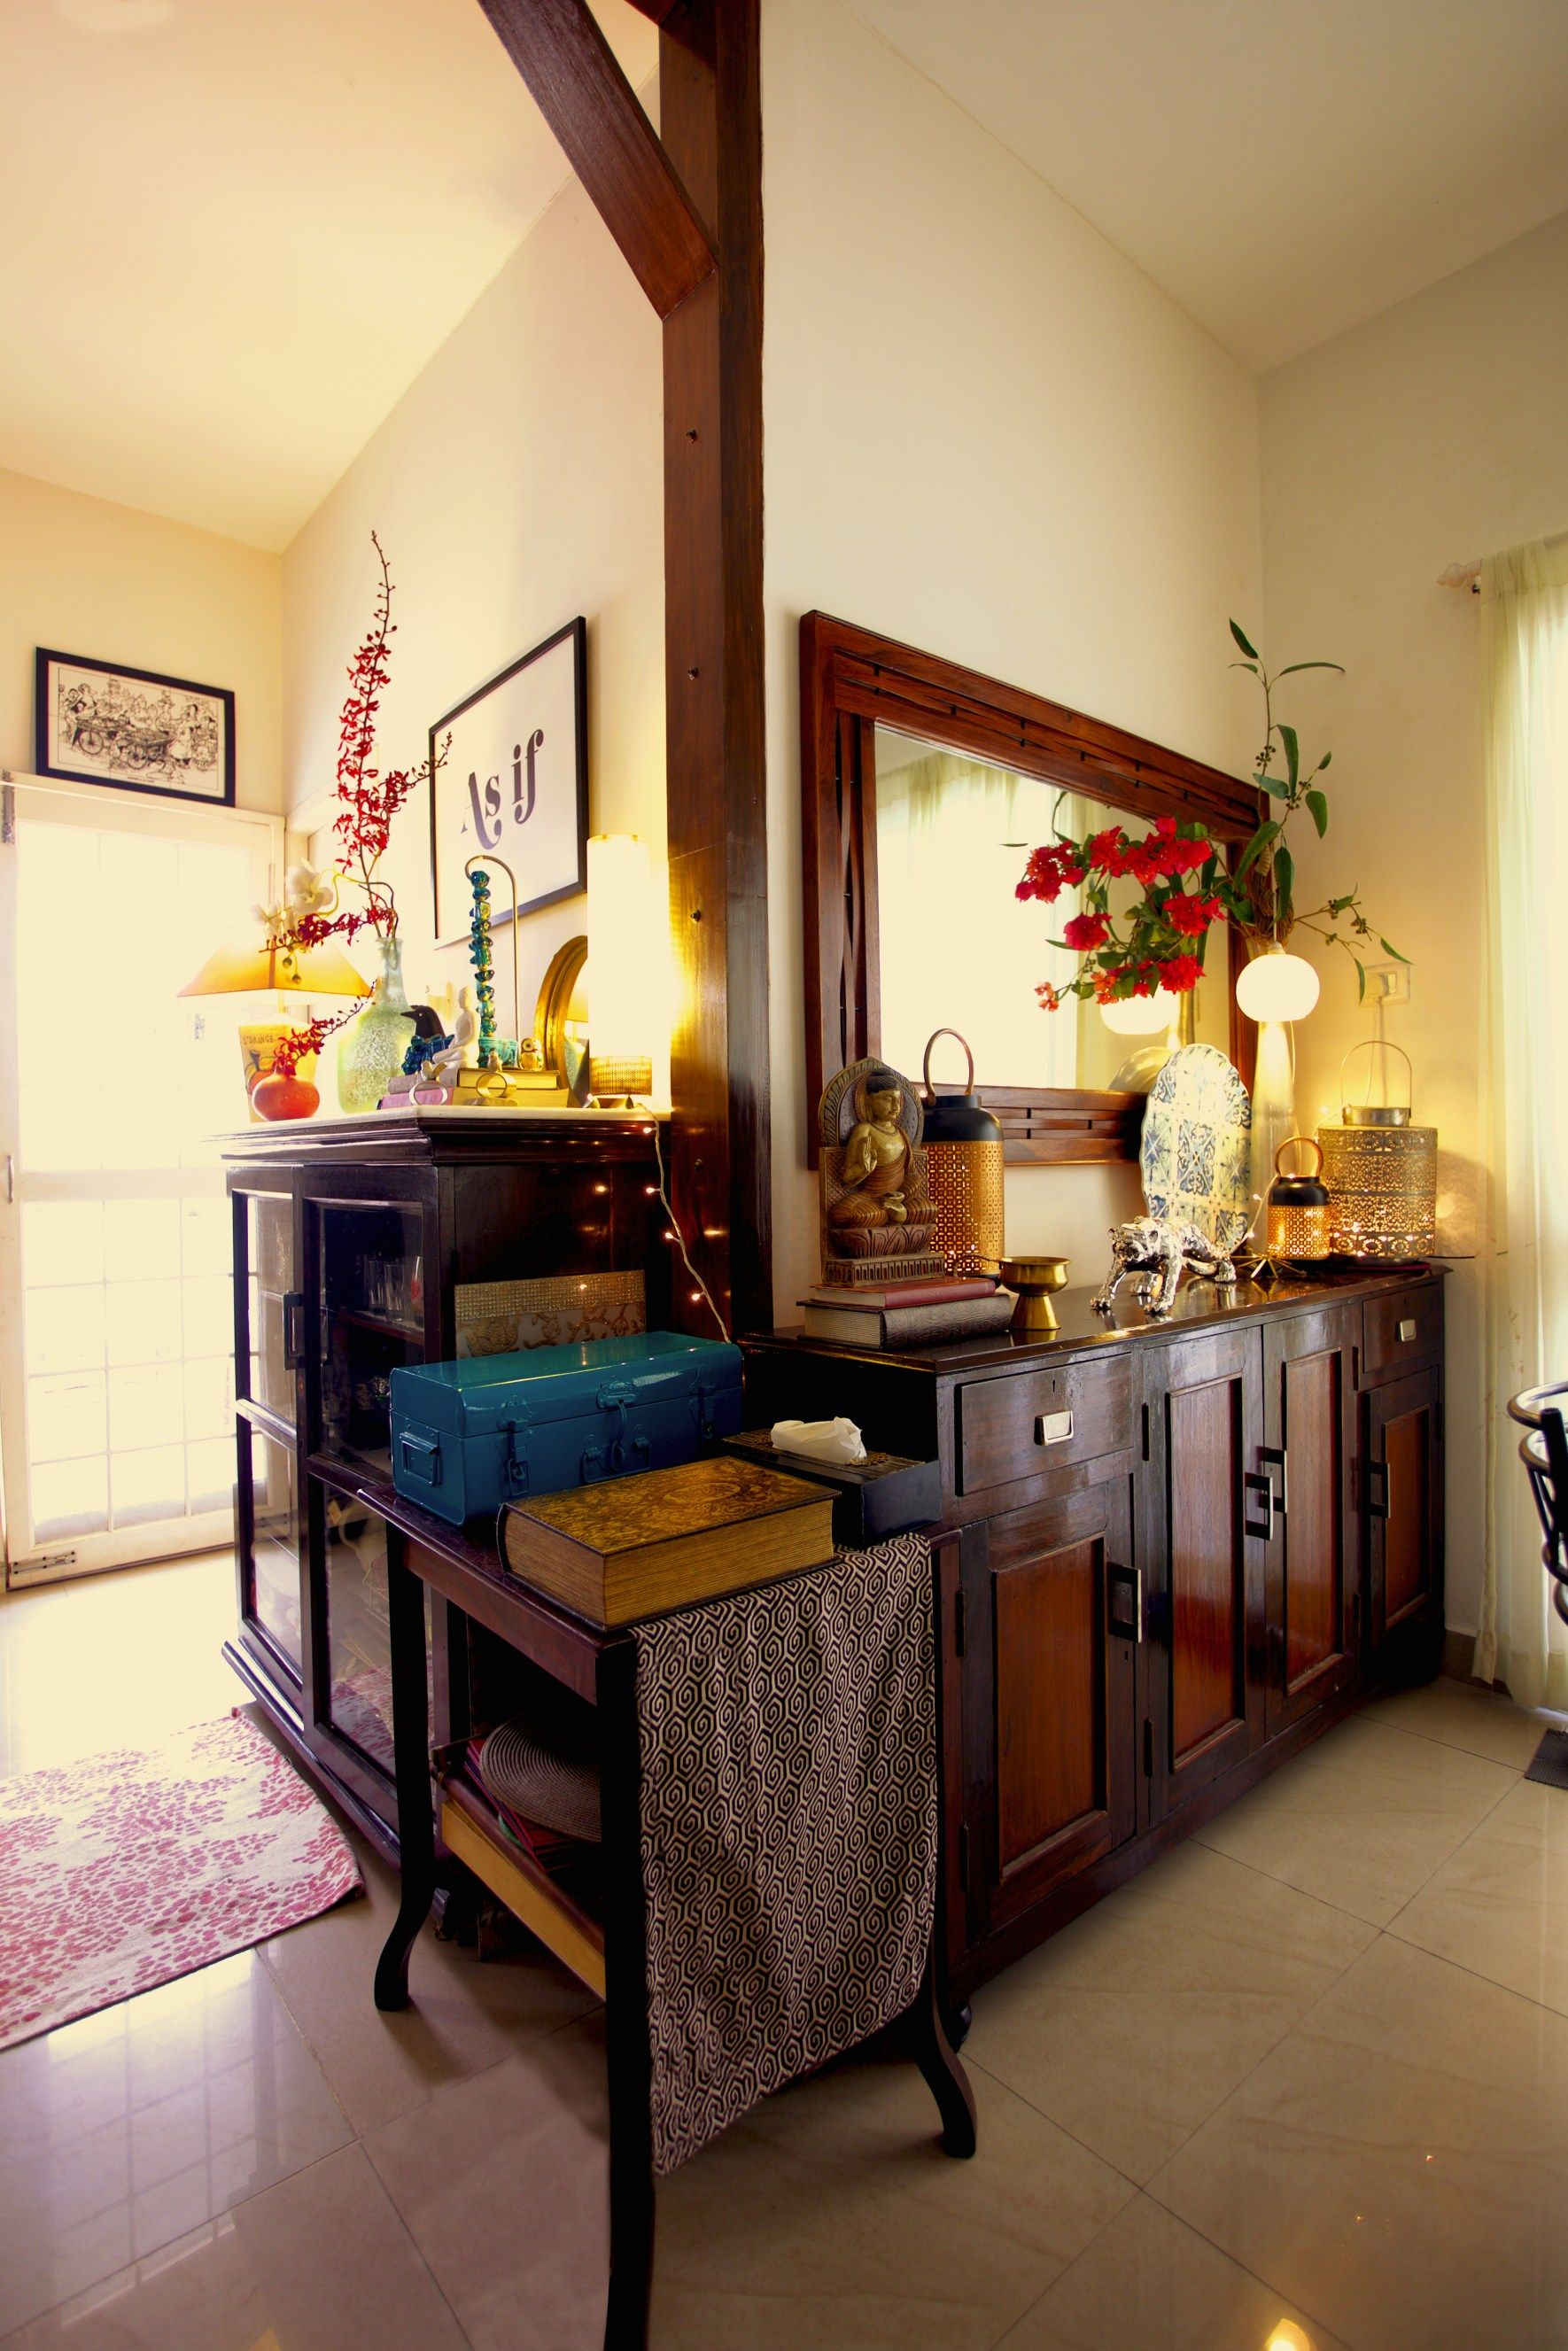 Sujatha and bharath live in their sqft flat madras chennai are you stuck on the title  agree it is  bit cryptic but when read through also den interior design pinterest rh za